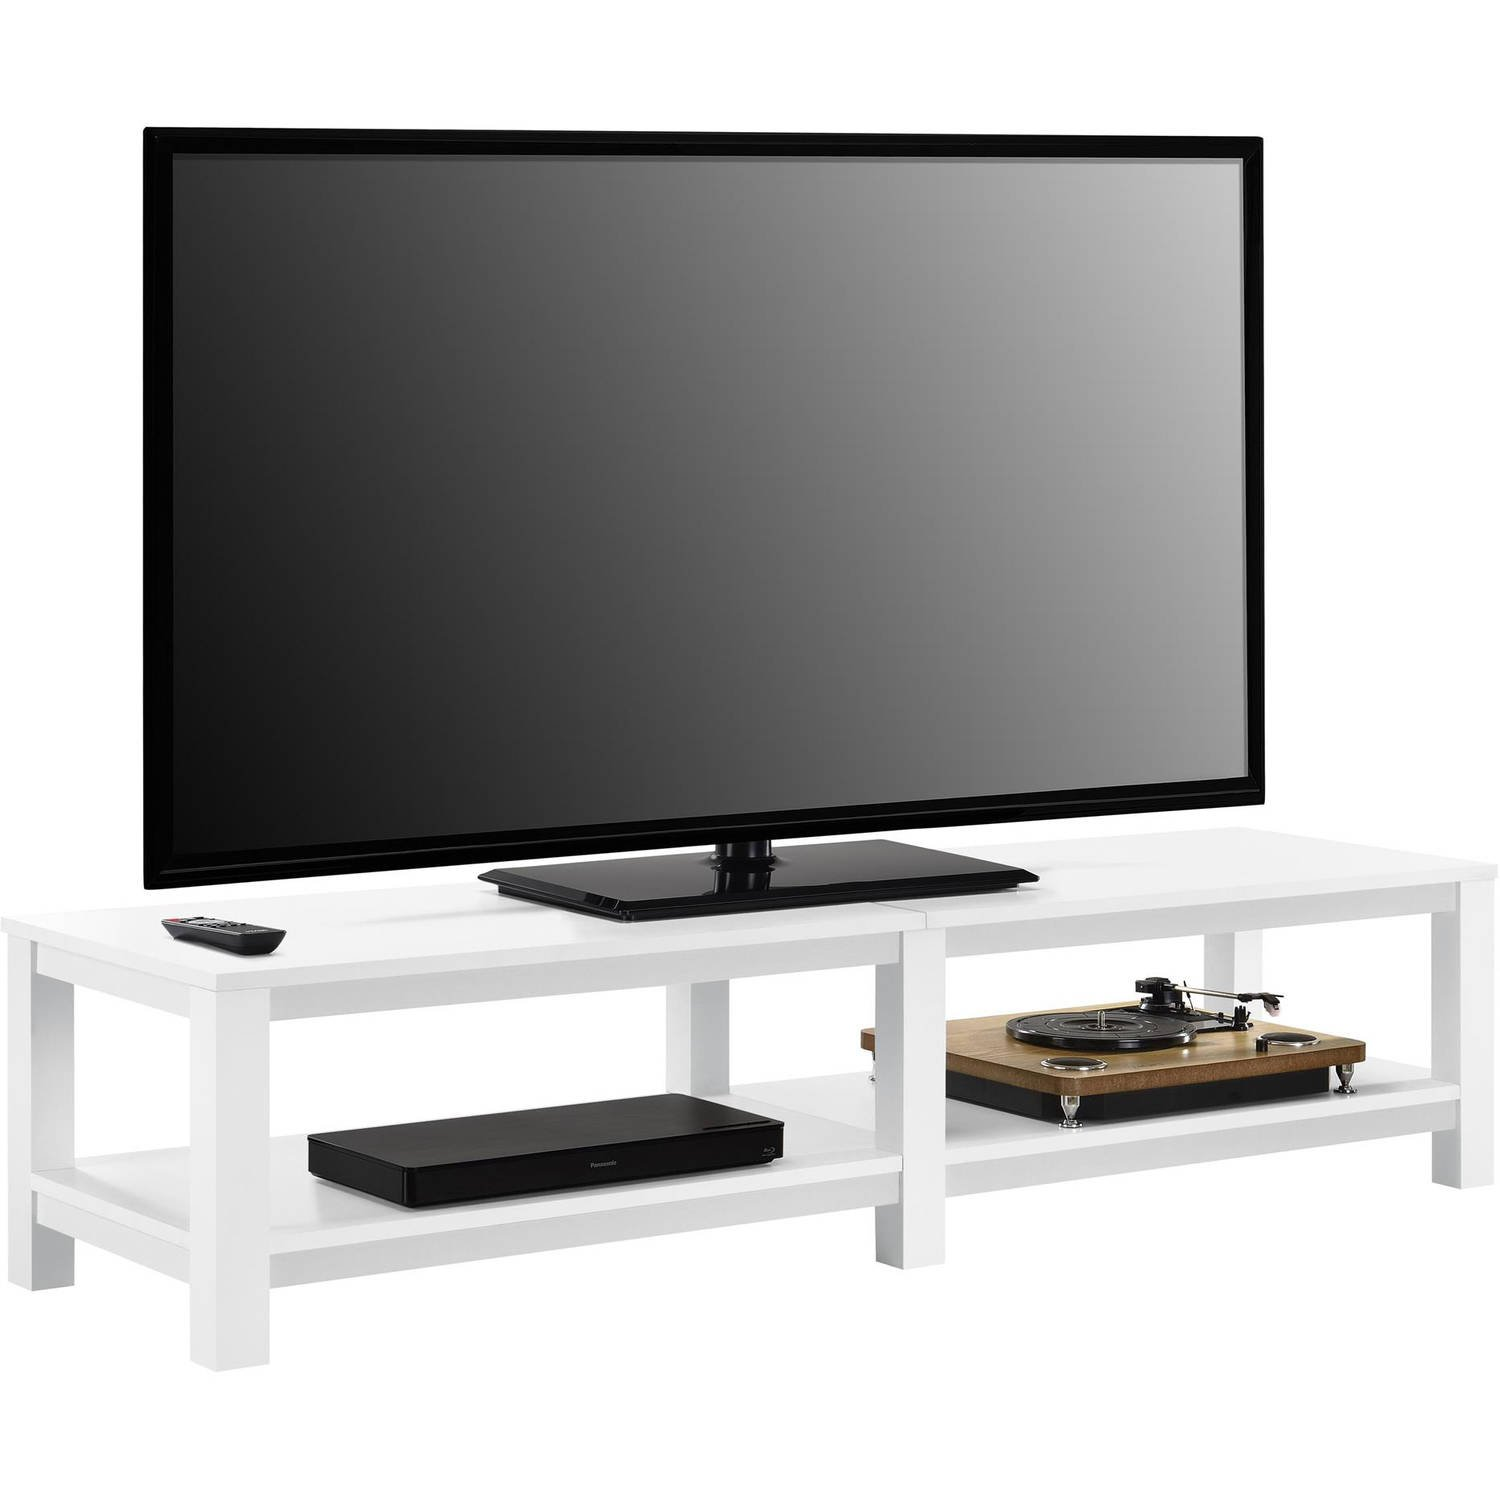 Amazon Com Mainstay Parsons Tv Stand For Tvs Up To 65 White